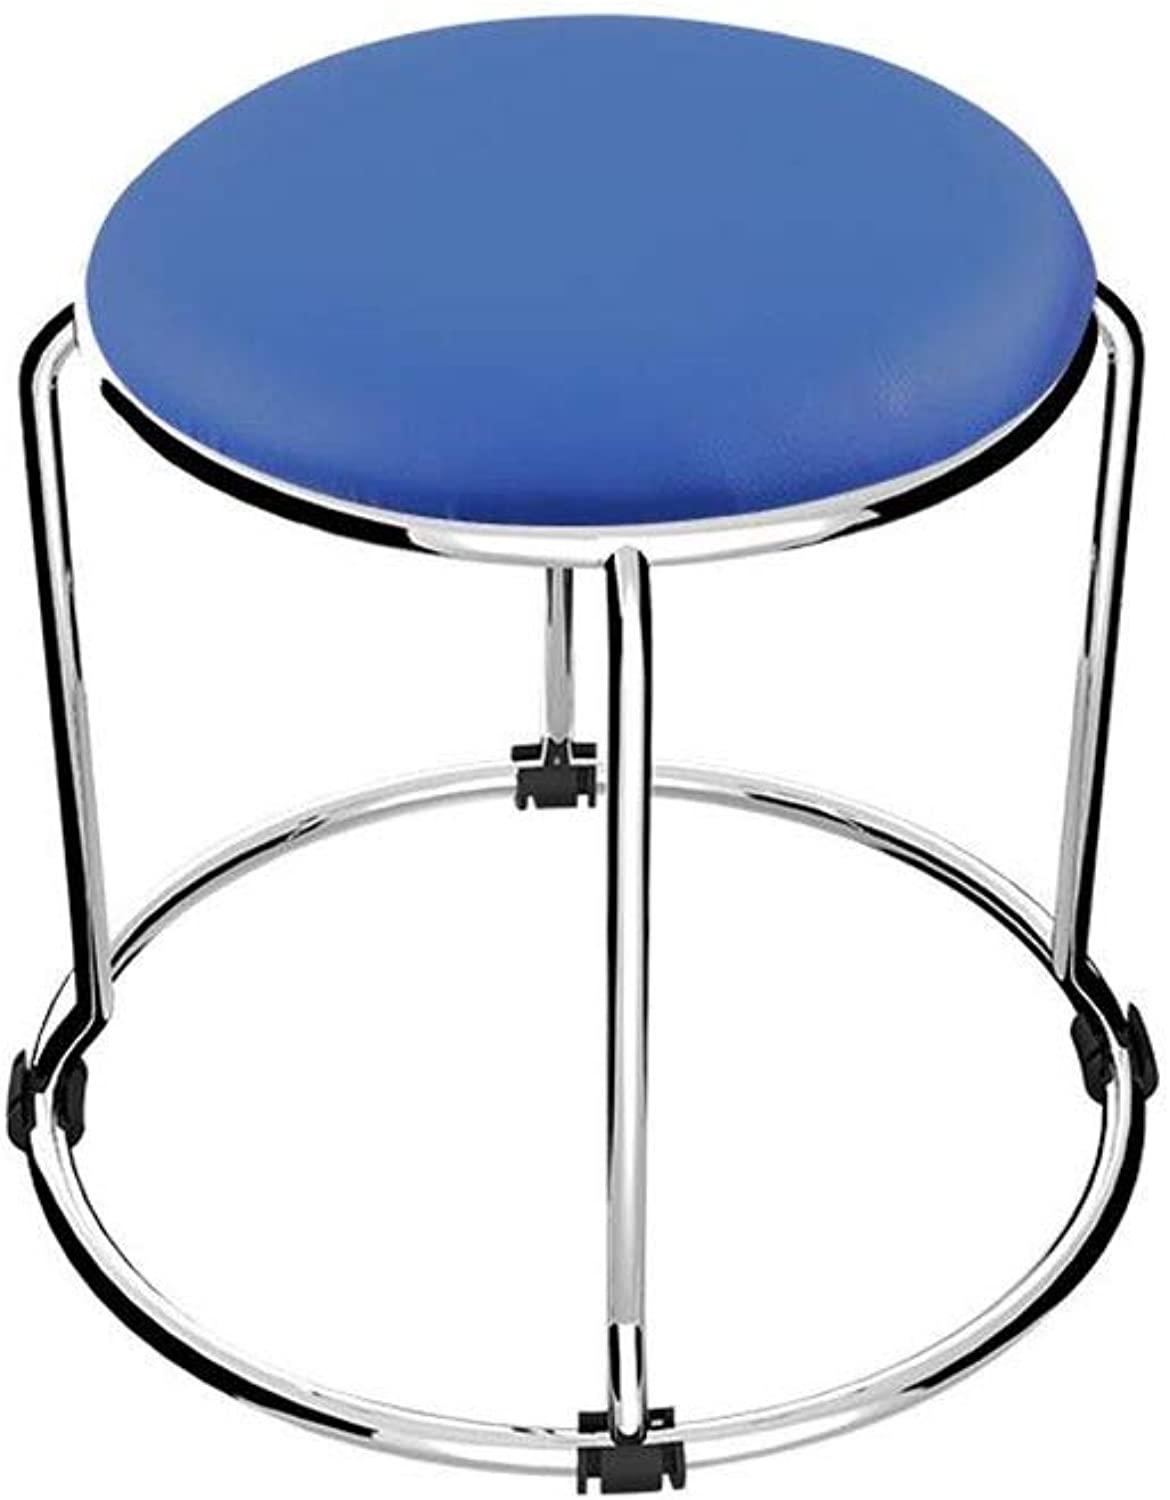 QIQI-LIFE Low Stool Stainless Steel Stackable Small Round Stool, Home Art Stool PU Soft Footstool (color   bluee)